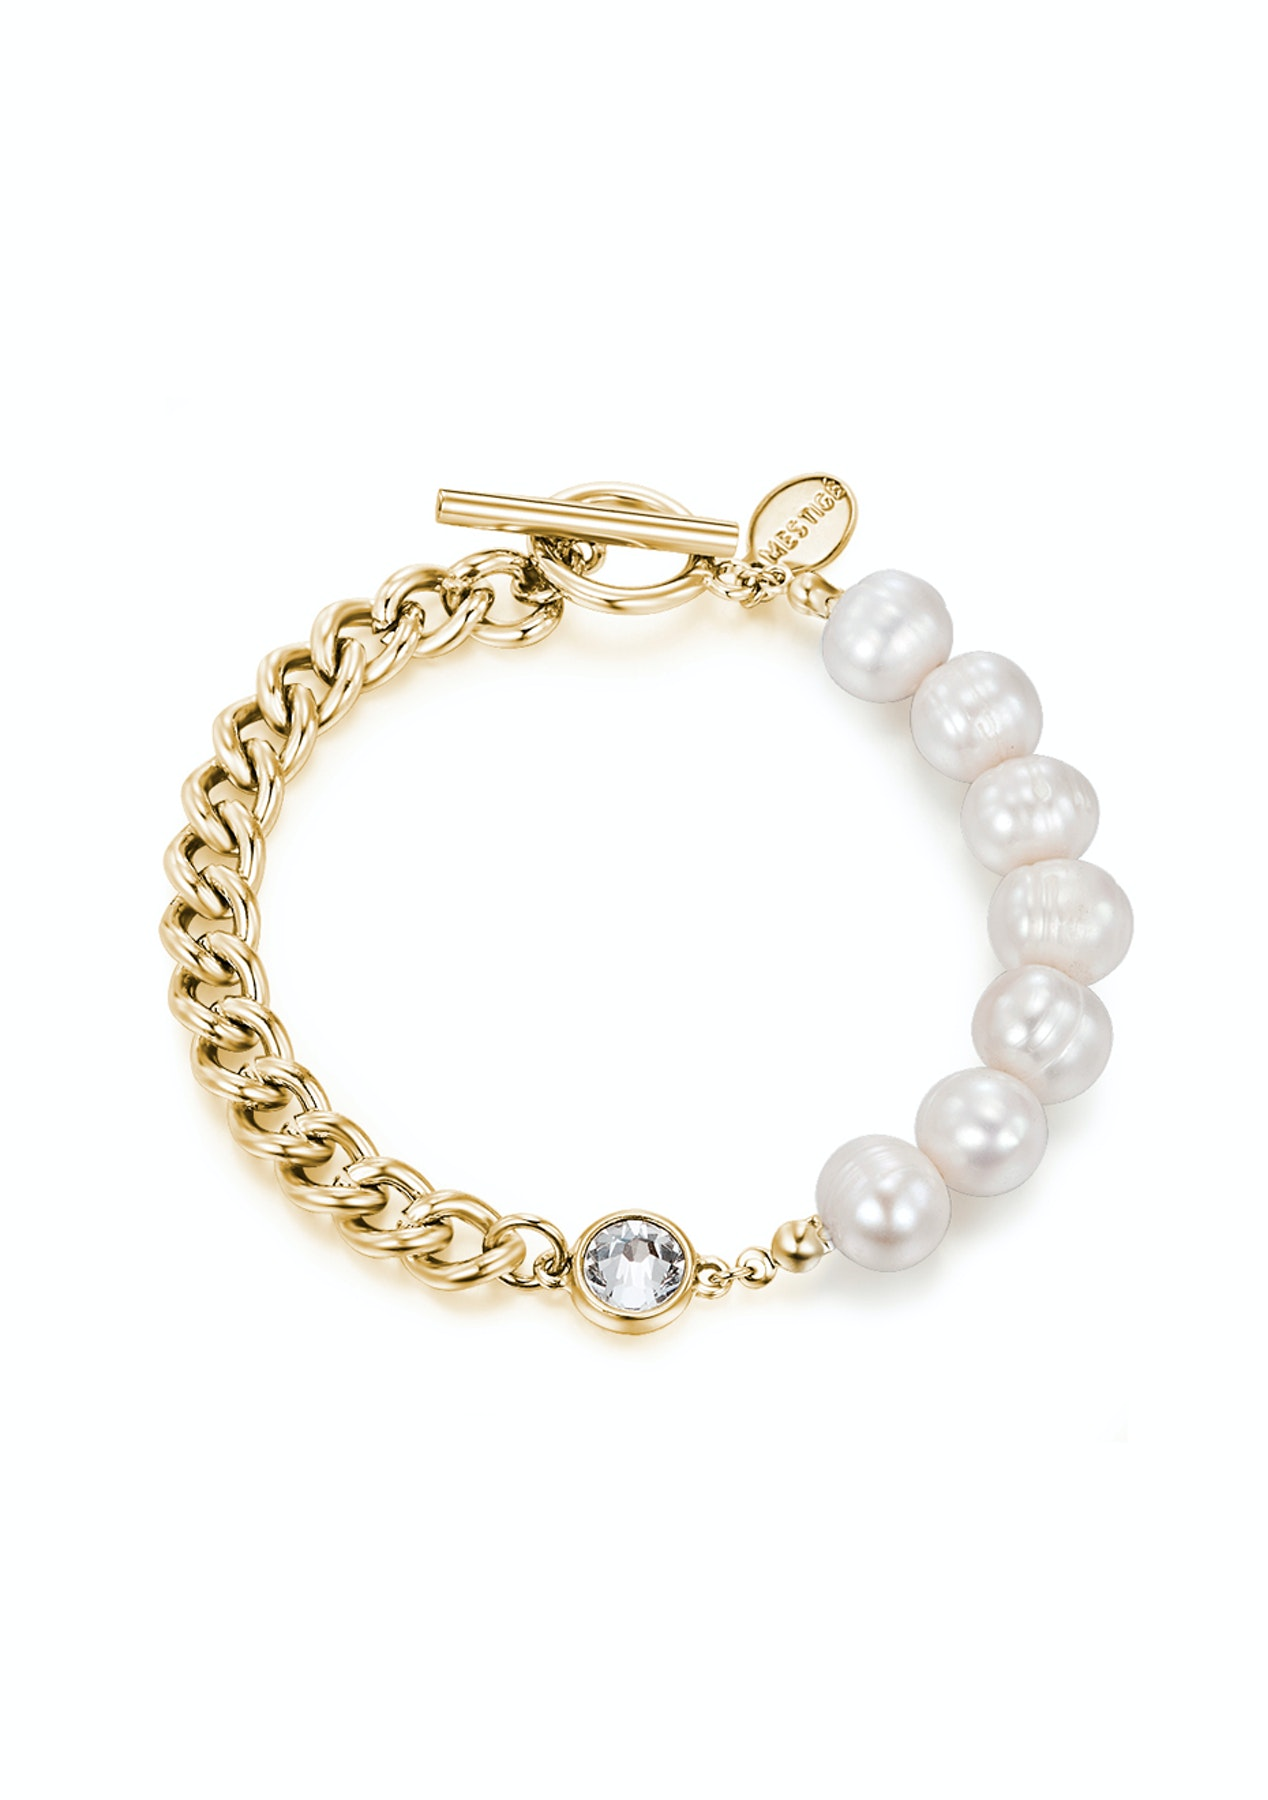 f05131f0e Golden Nissi Bracelet with Crystals from Swarovski - Mestige Swarovski  Elements - Onceit